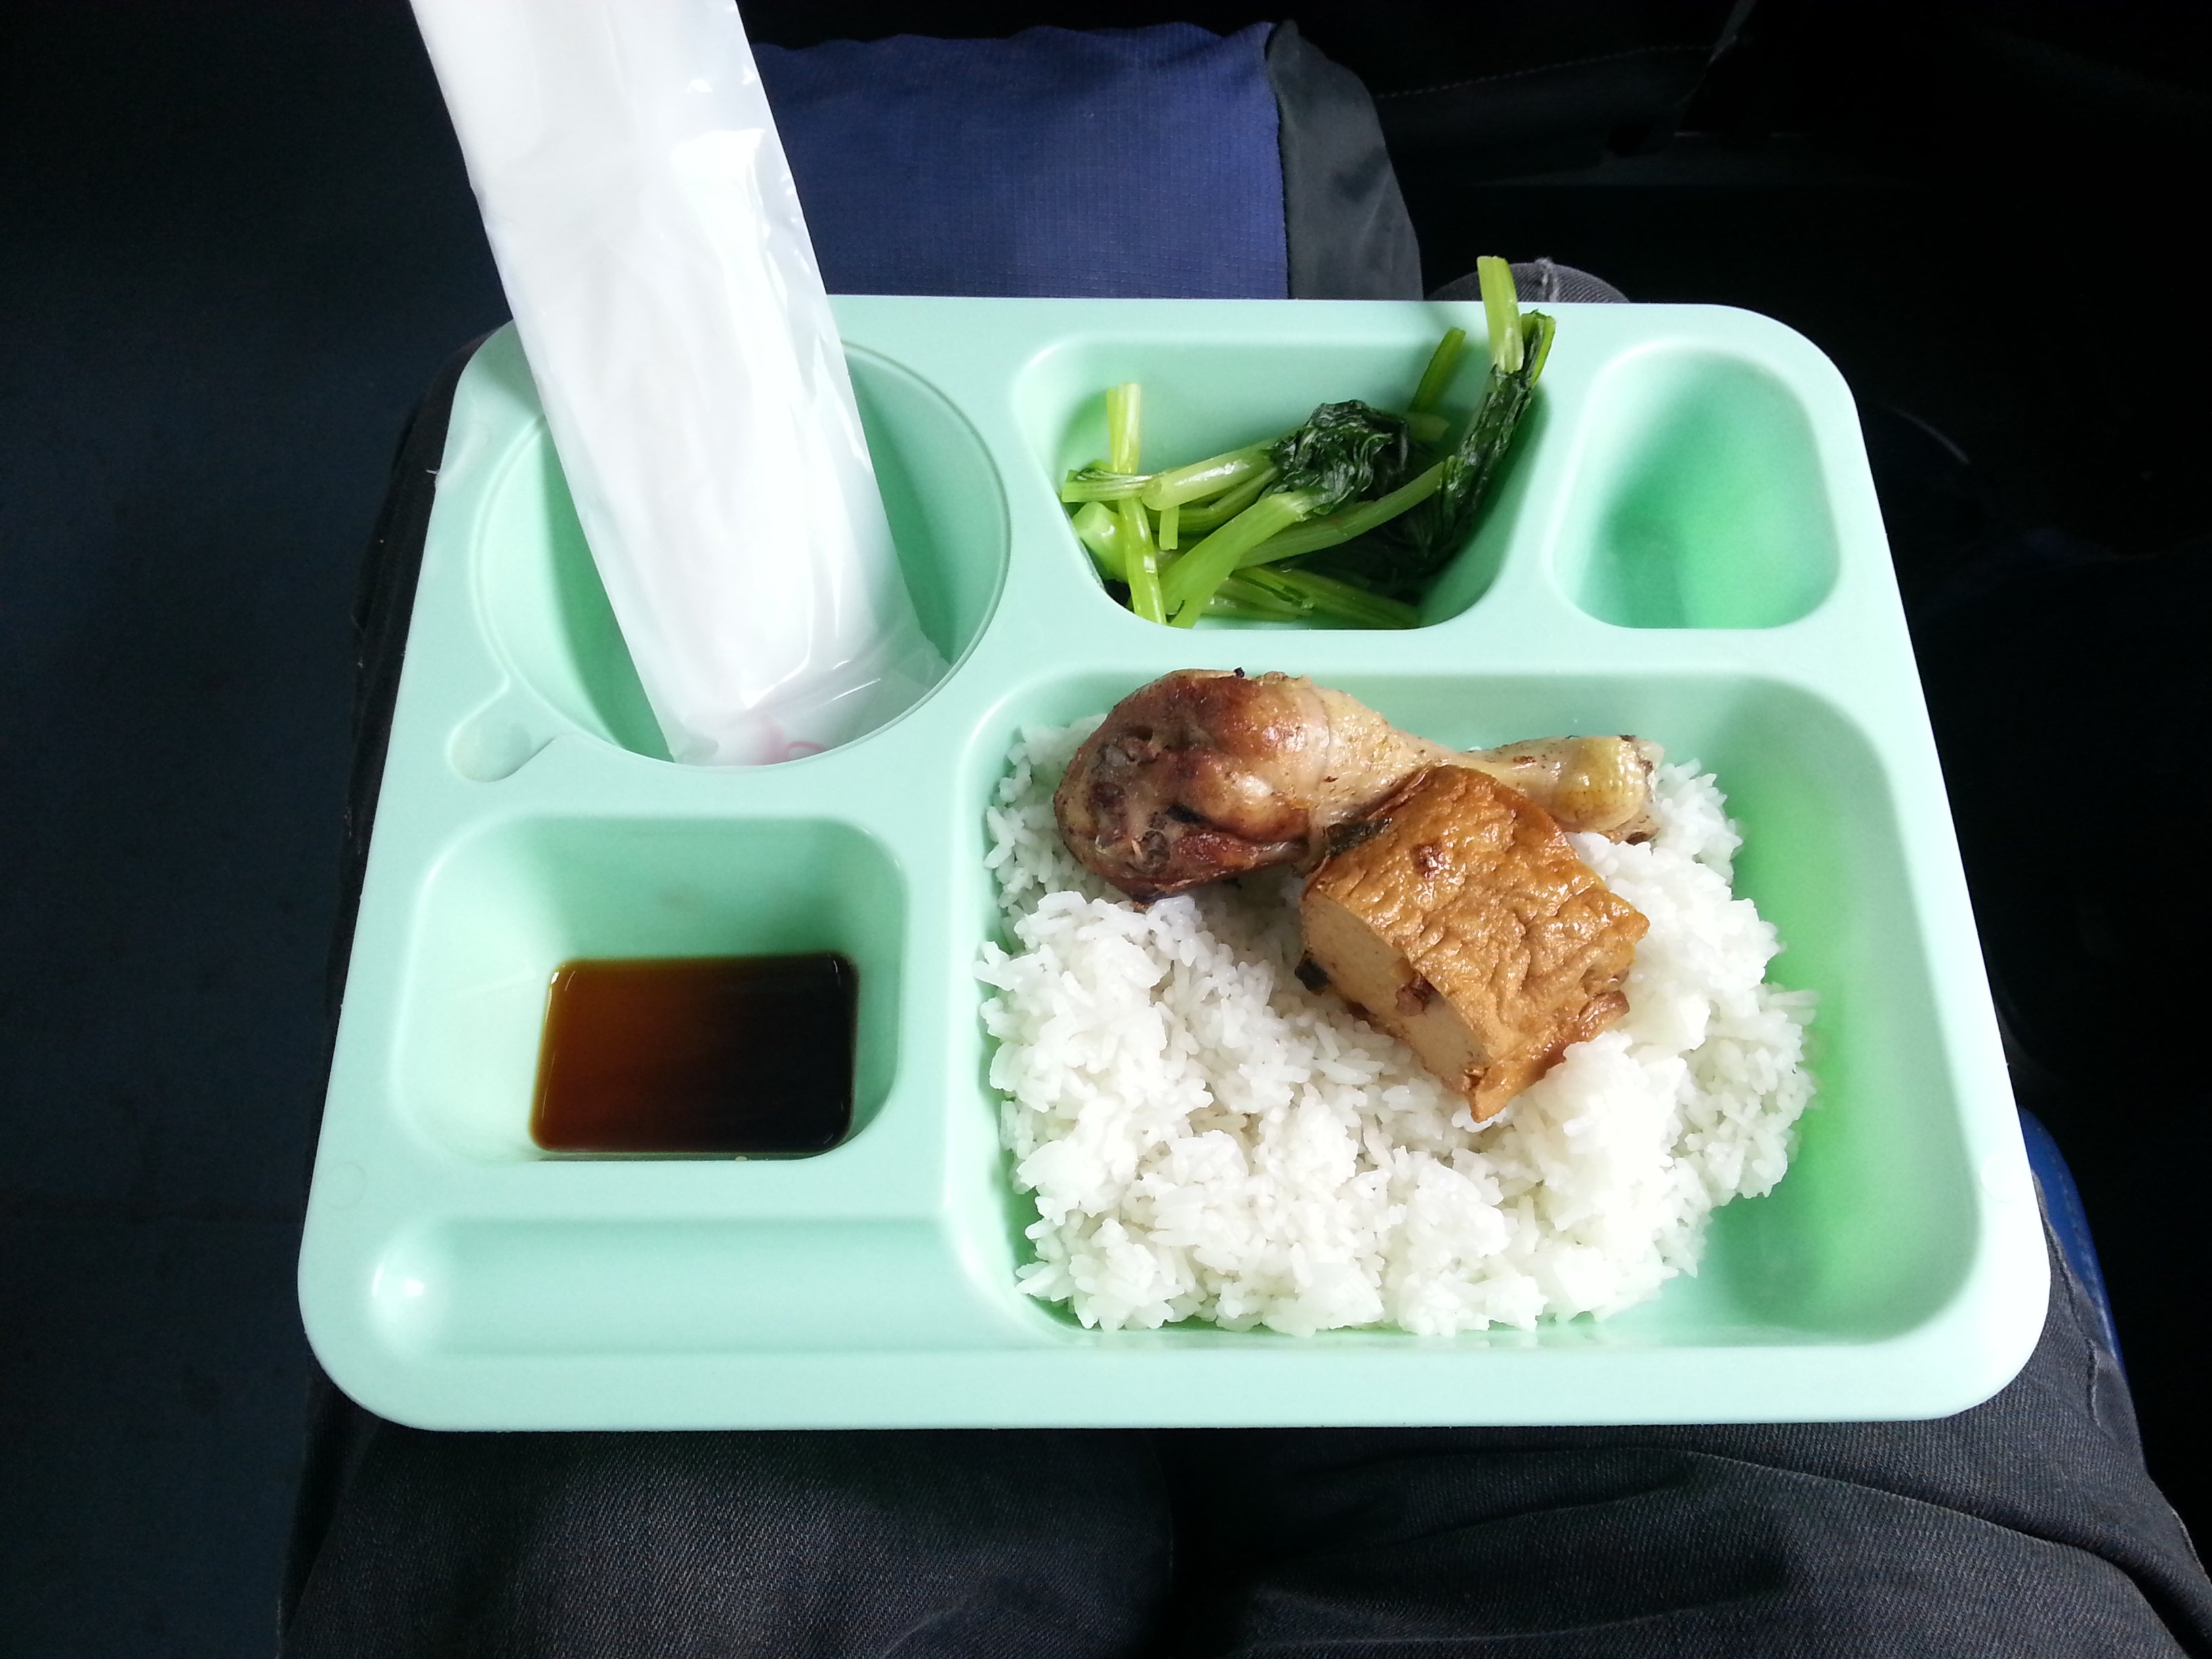 Meal on a Vietnam train